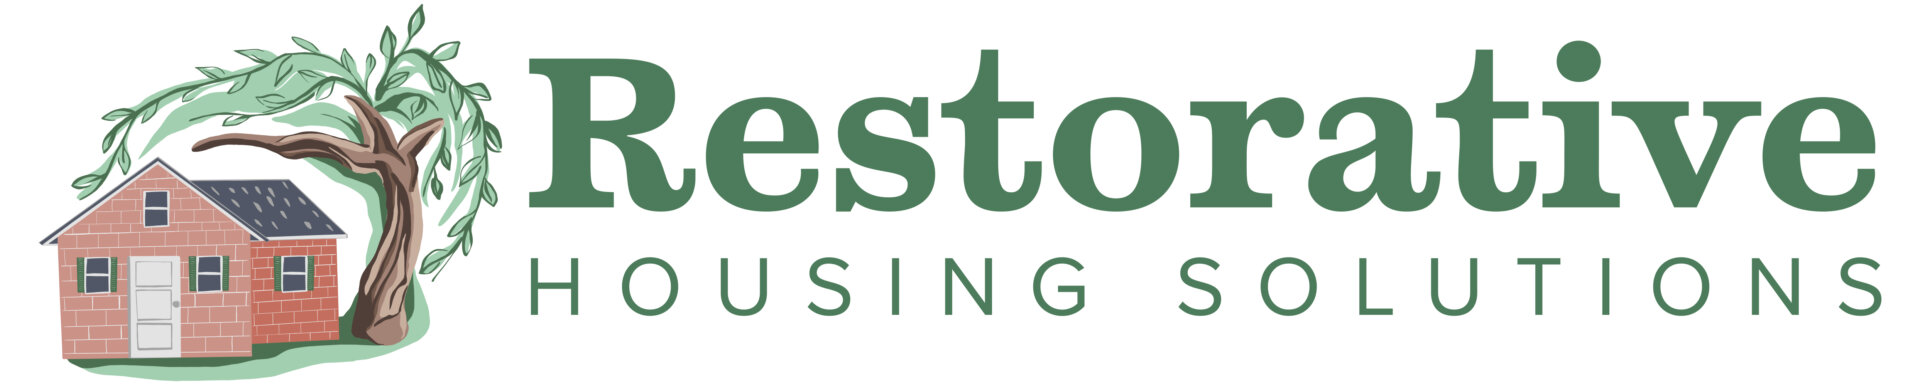 Restorative Housing Solutions logo